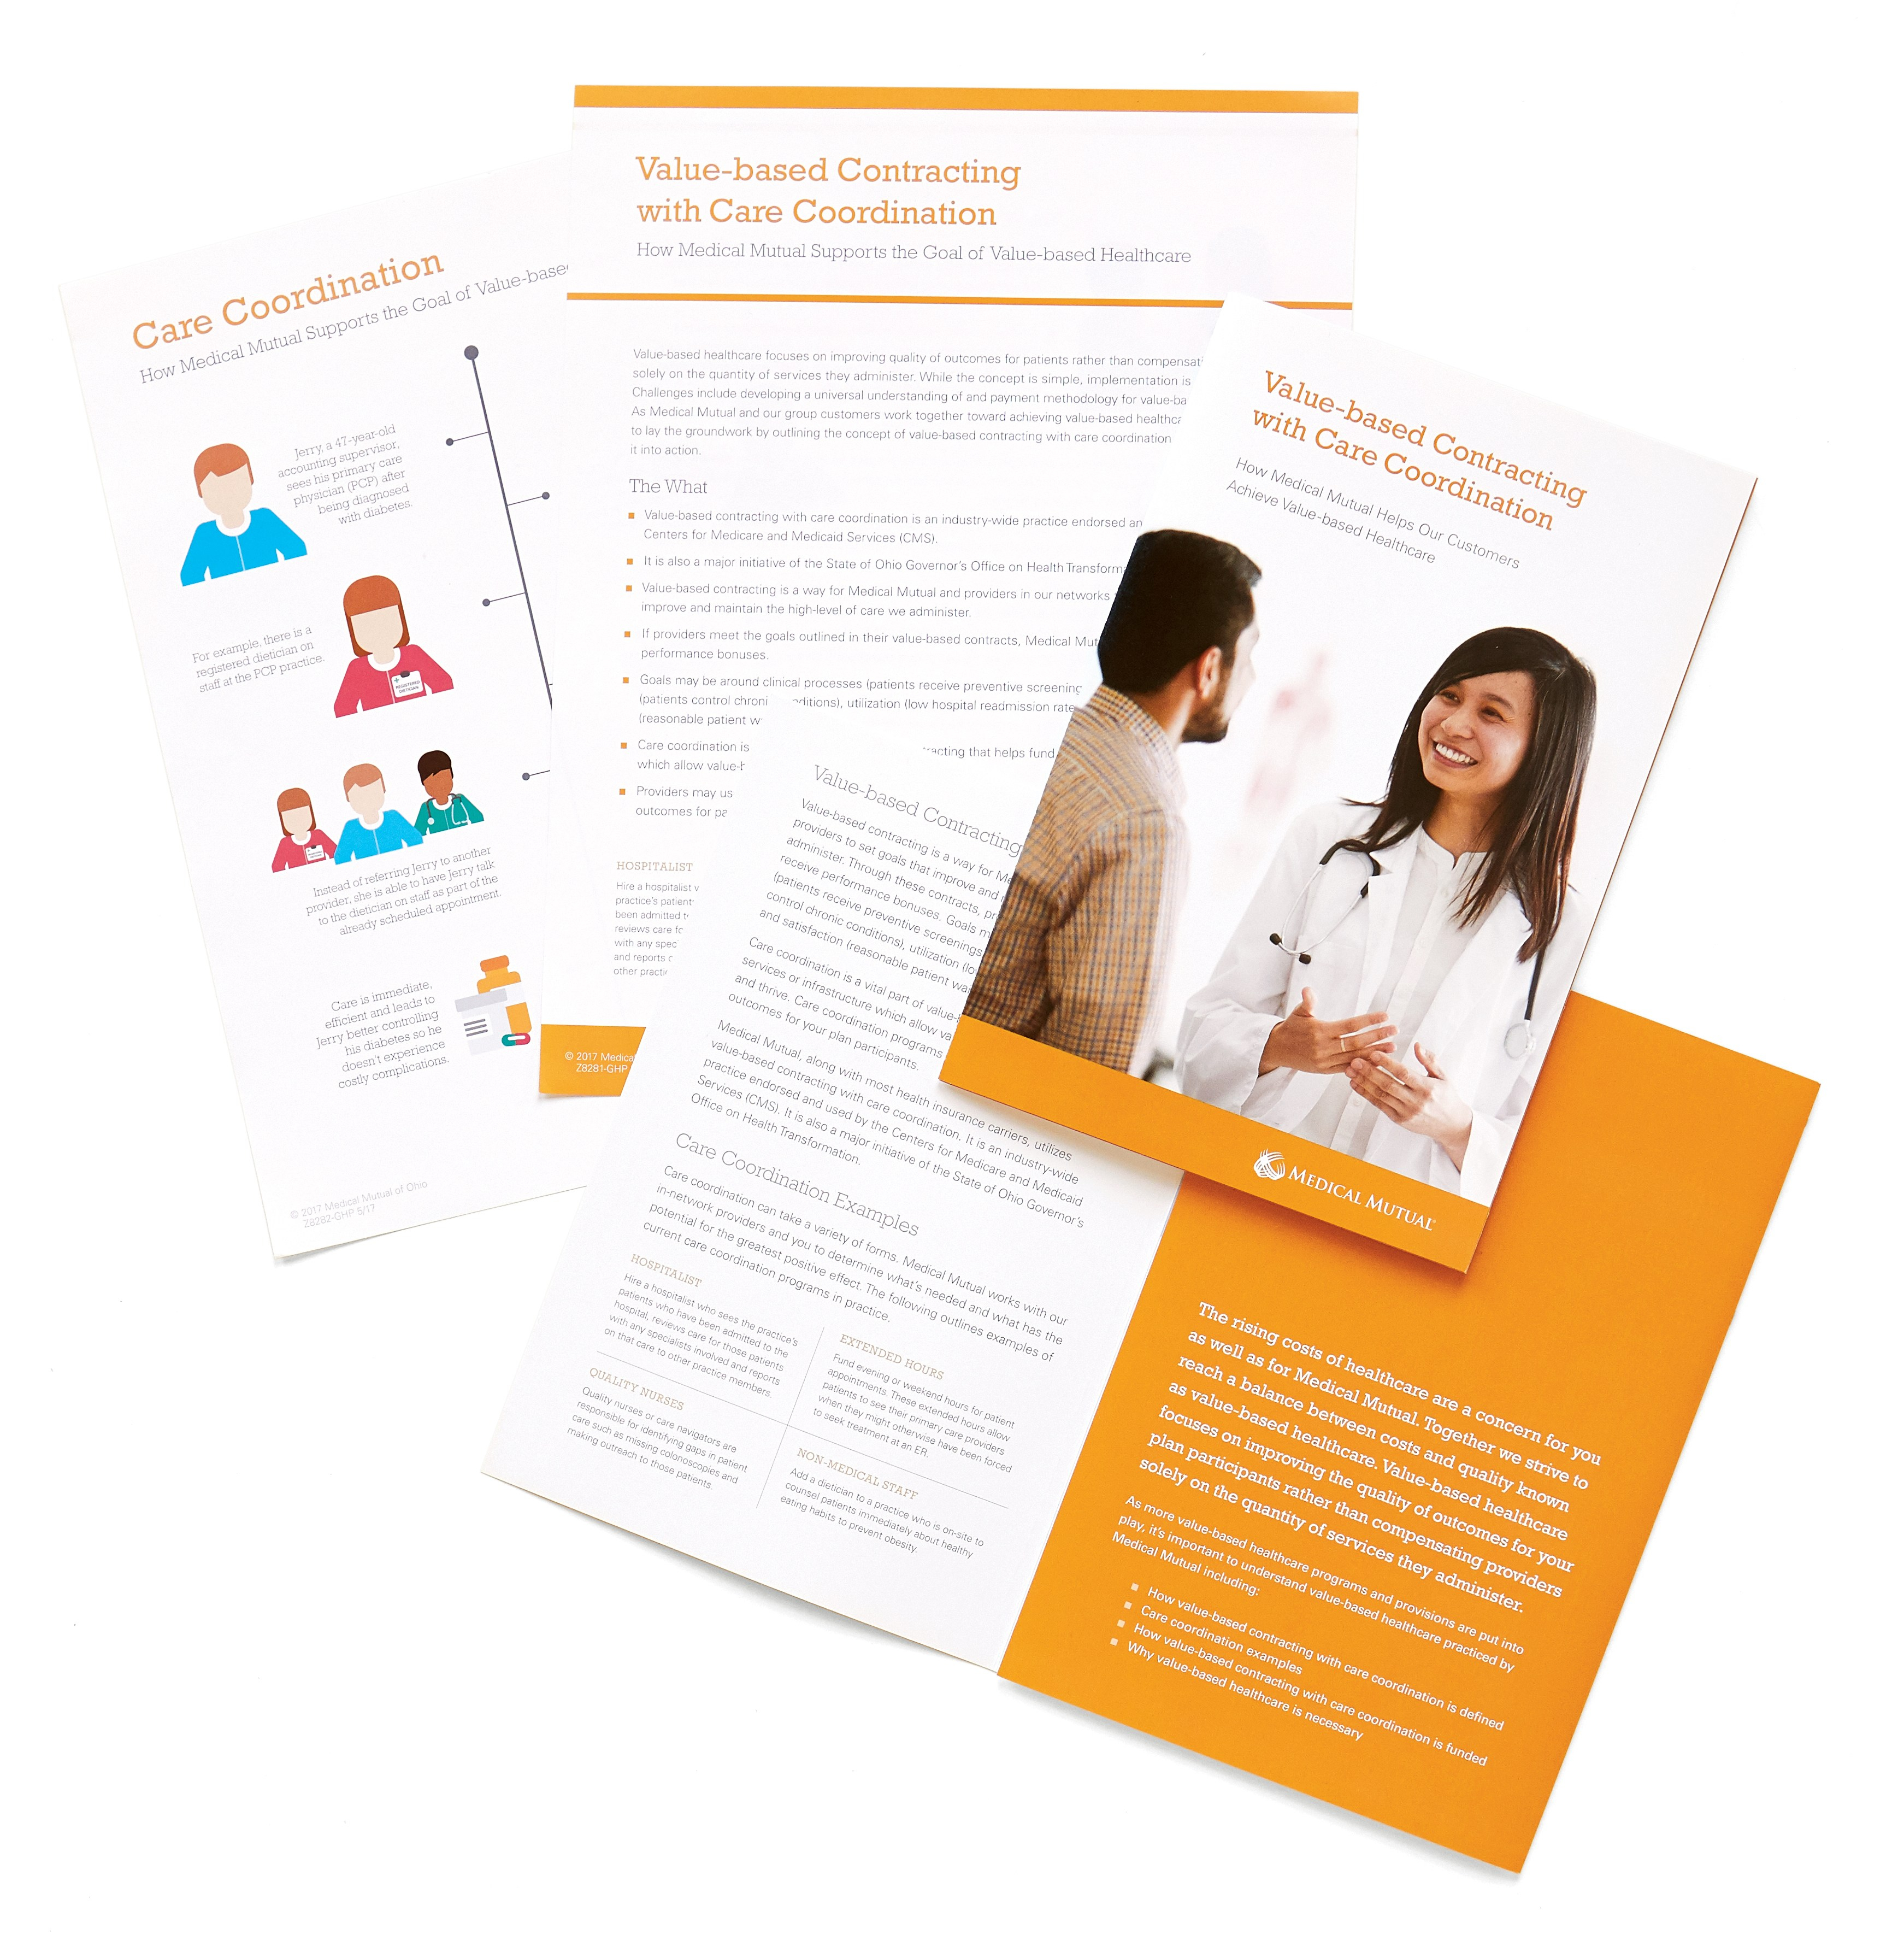 Value-based Contracting with Care Coordination Materials